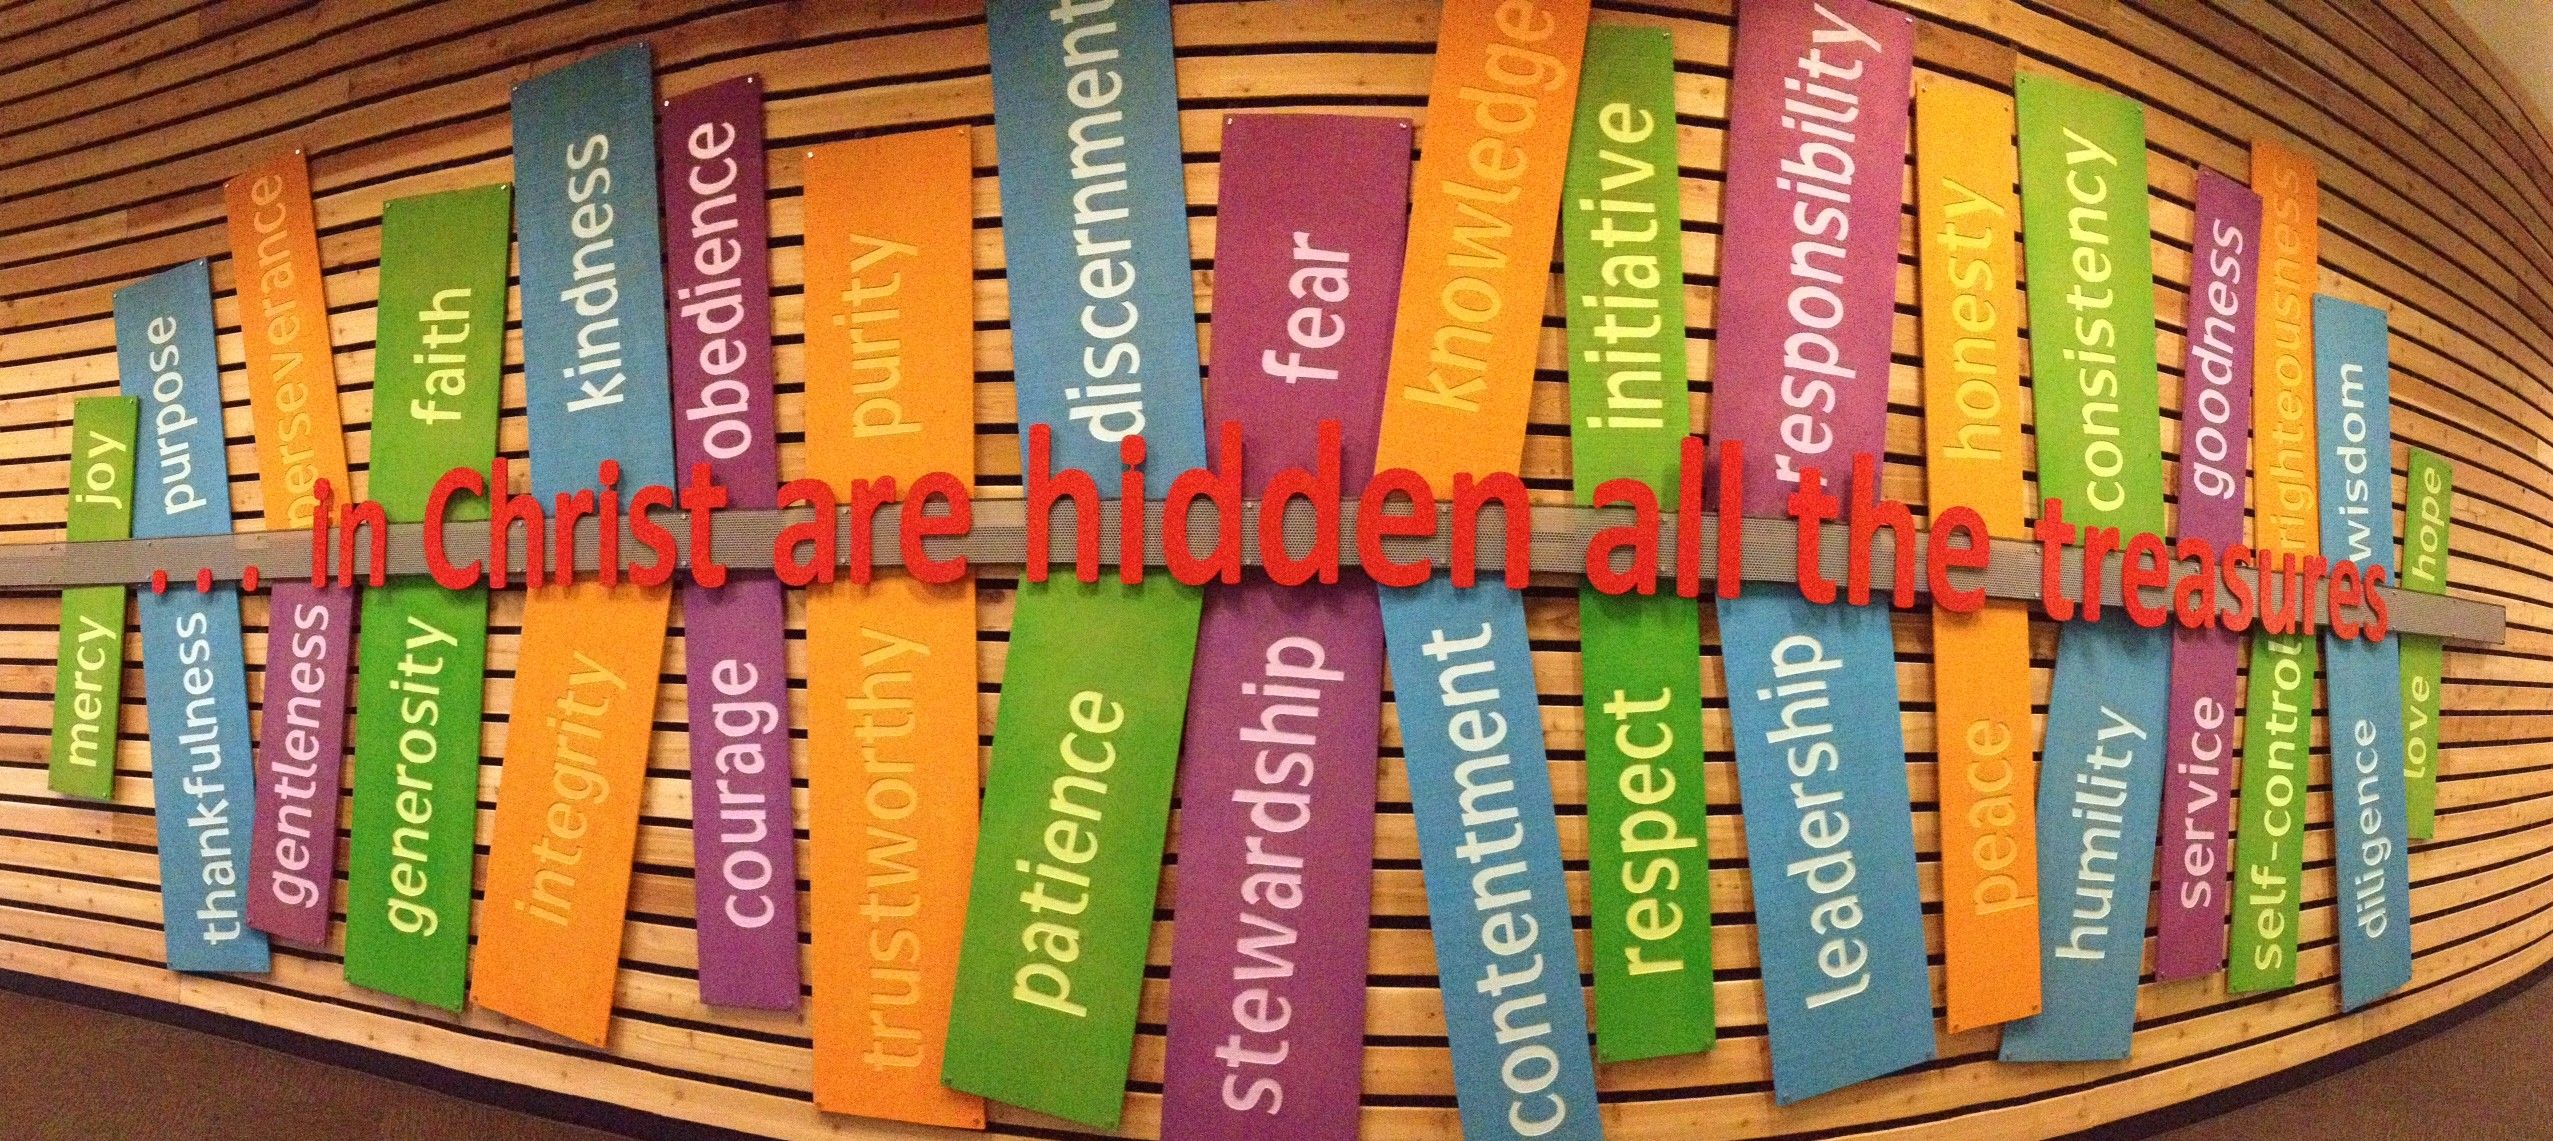 36 Godly Character Traits Watermark S Elementary